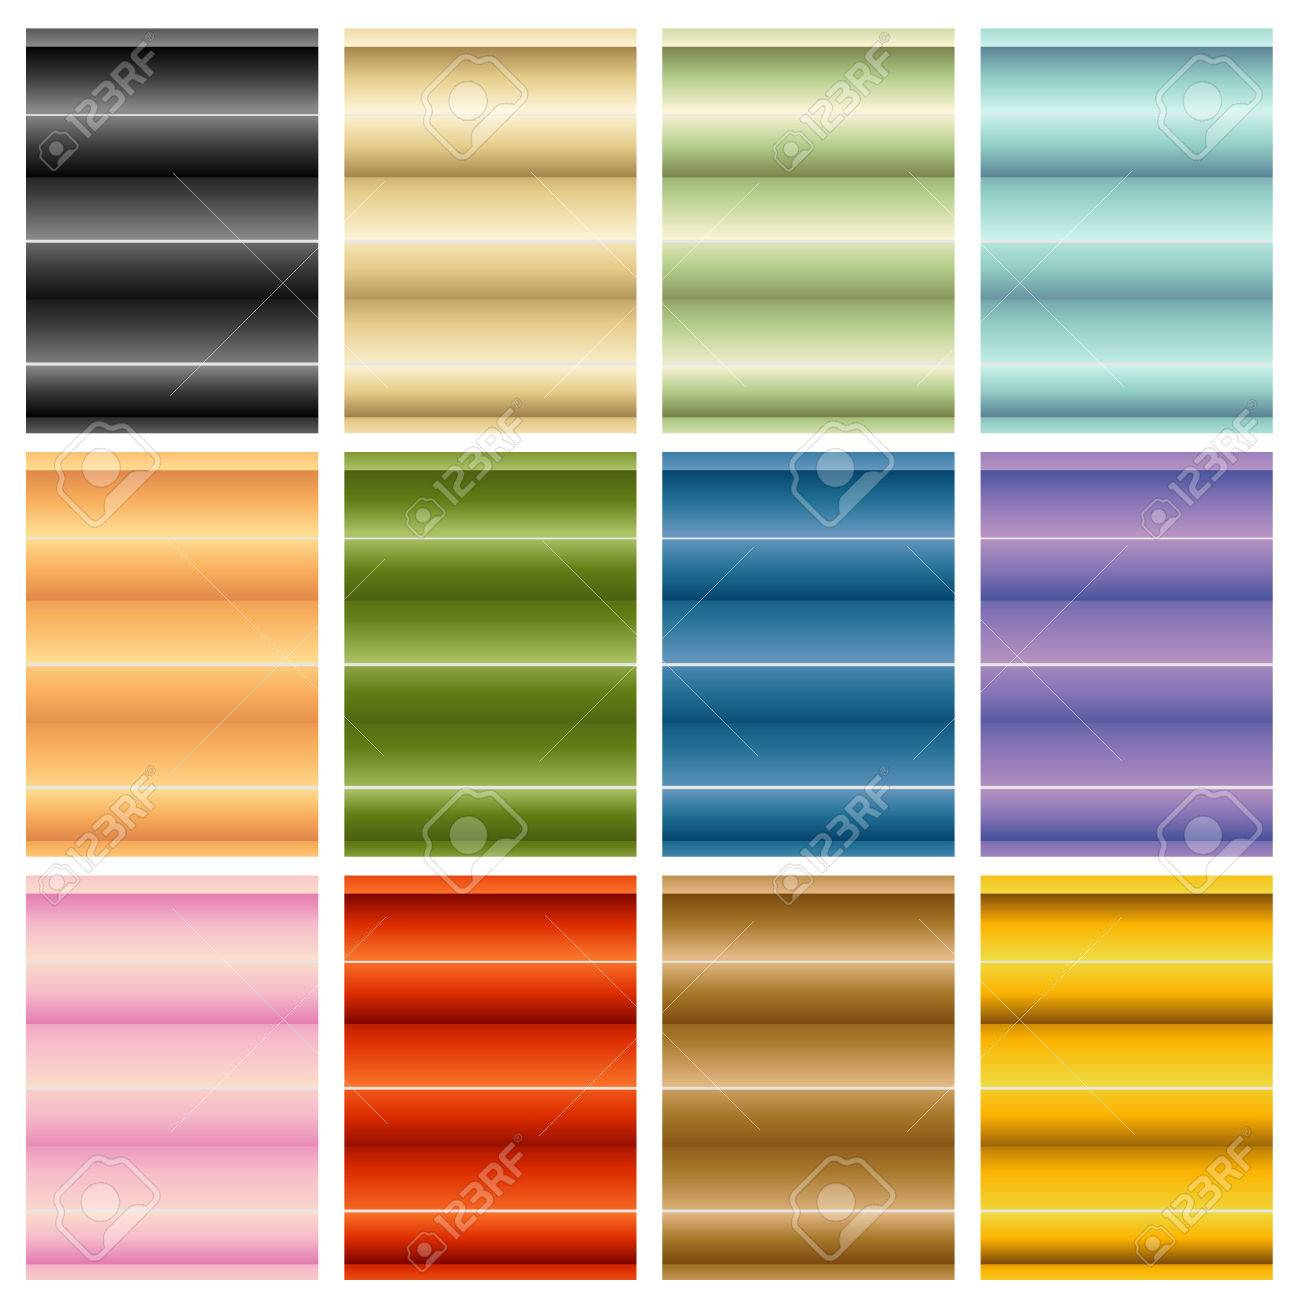 An image of window blinds shades set. Stock Vector - 8130388